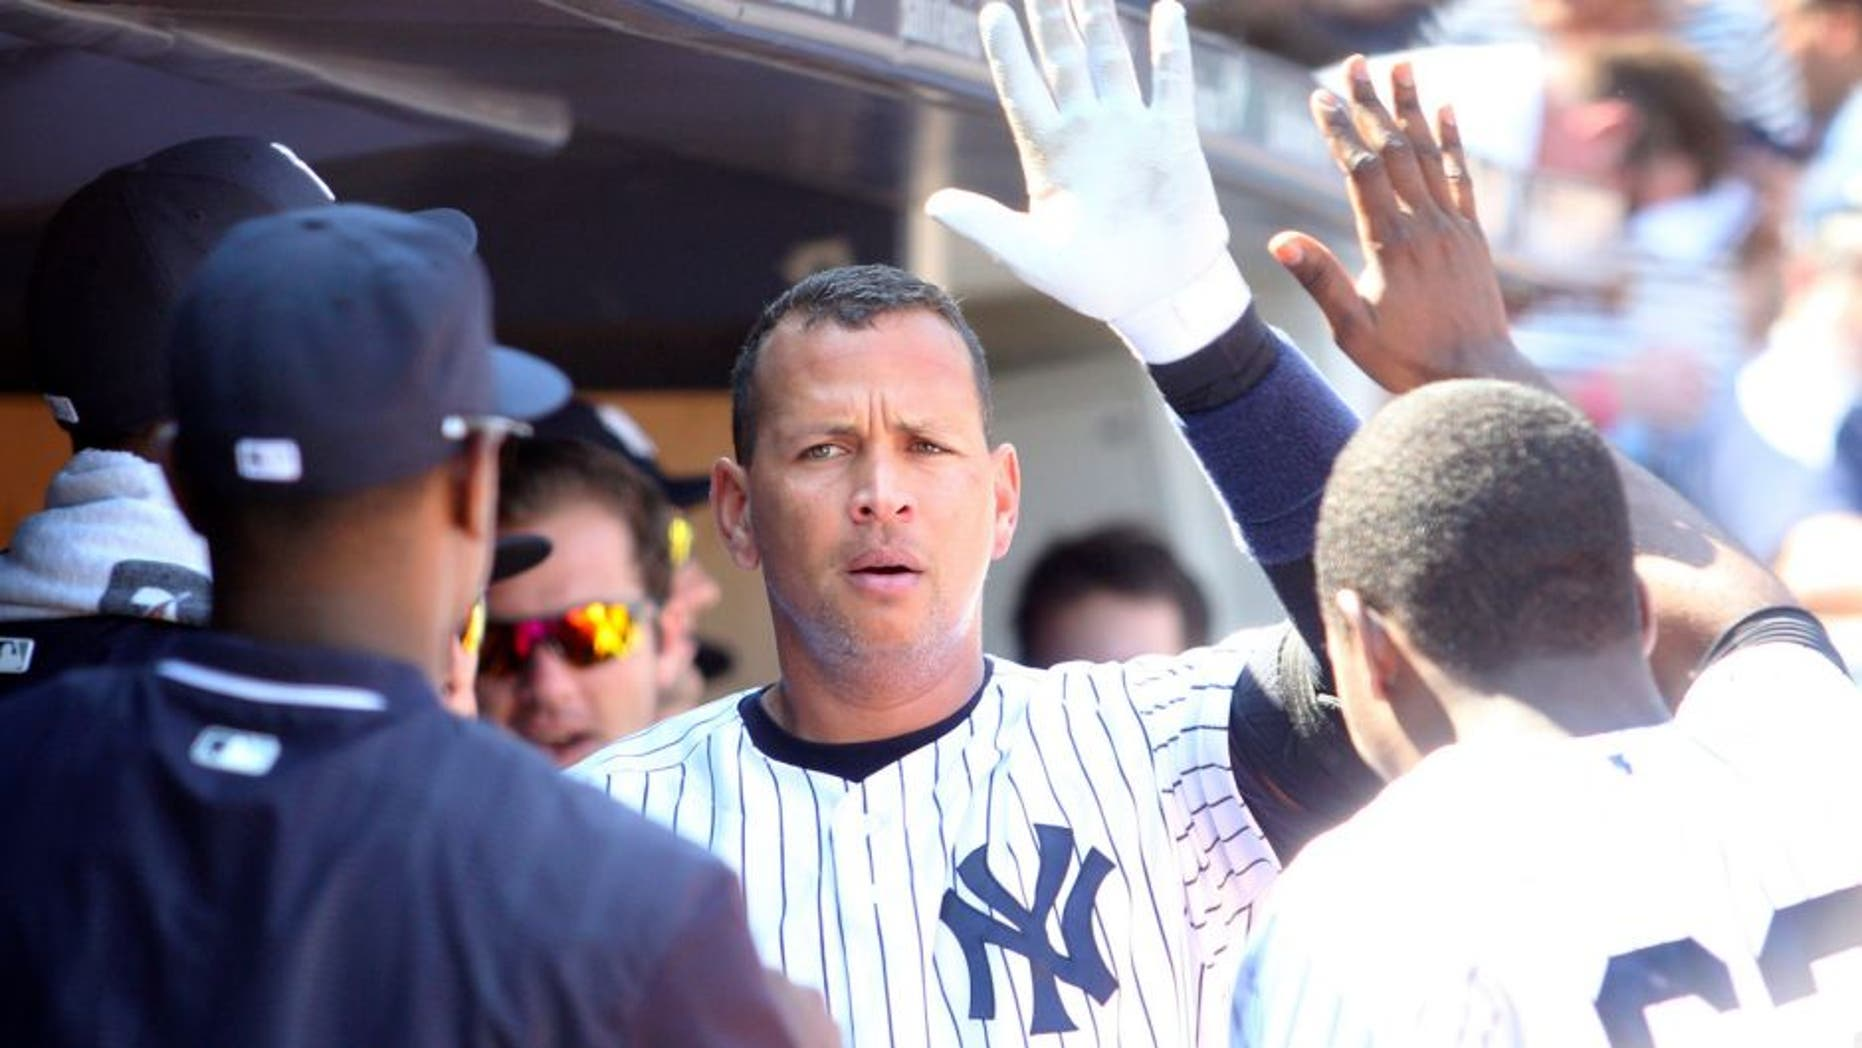 Sep 7, 2015; Bronx, NY, USA; New York Yankees designated hitter Alex Rodriguez (13) is congratulated in the dugout after hitting a solo home run against the Baltimore Orioles during the fifth inning at Yankee Stadium. Mandatory Credit: Brad Penner-USA TODAY Sports